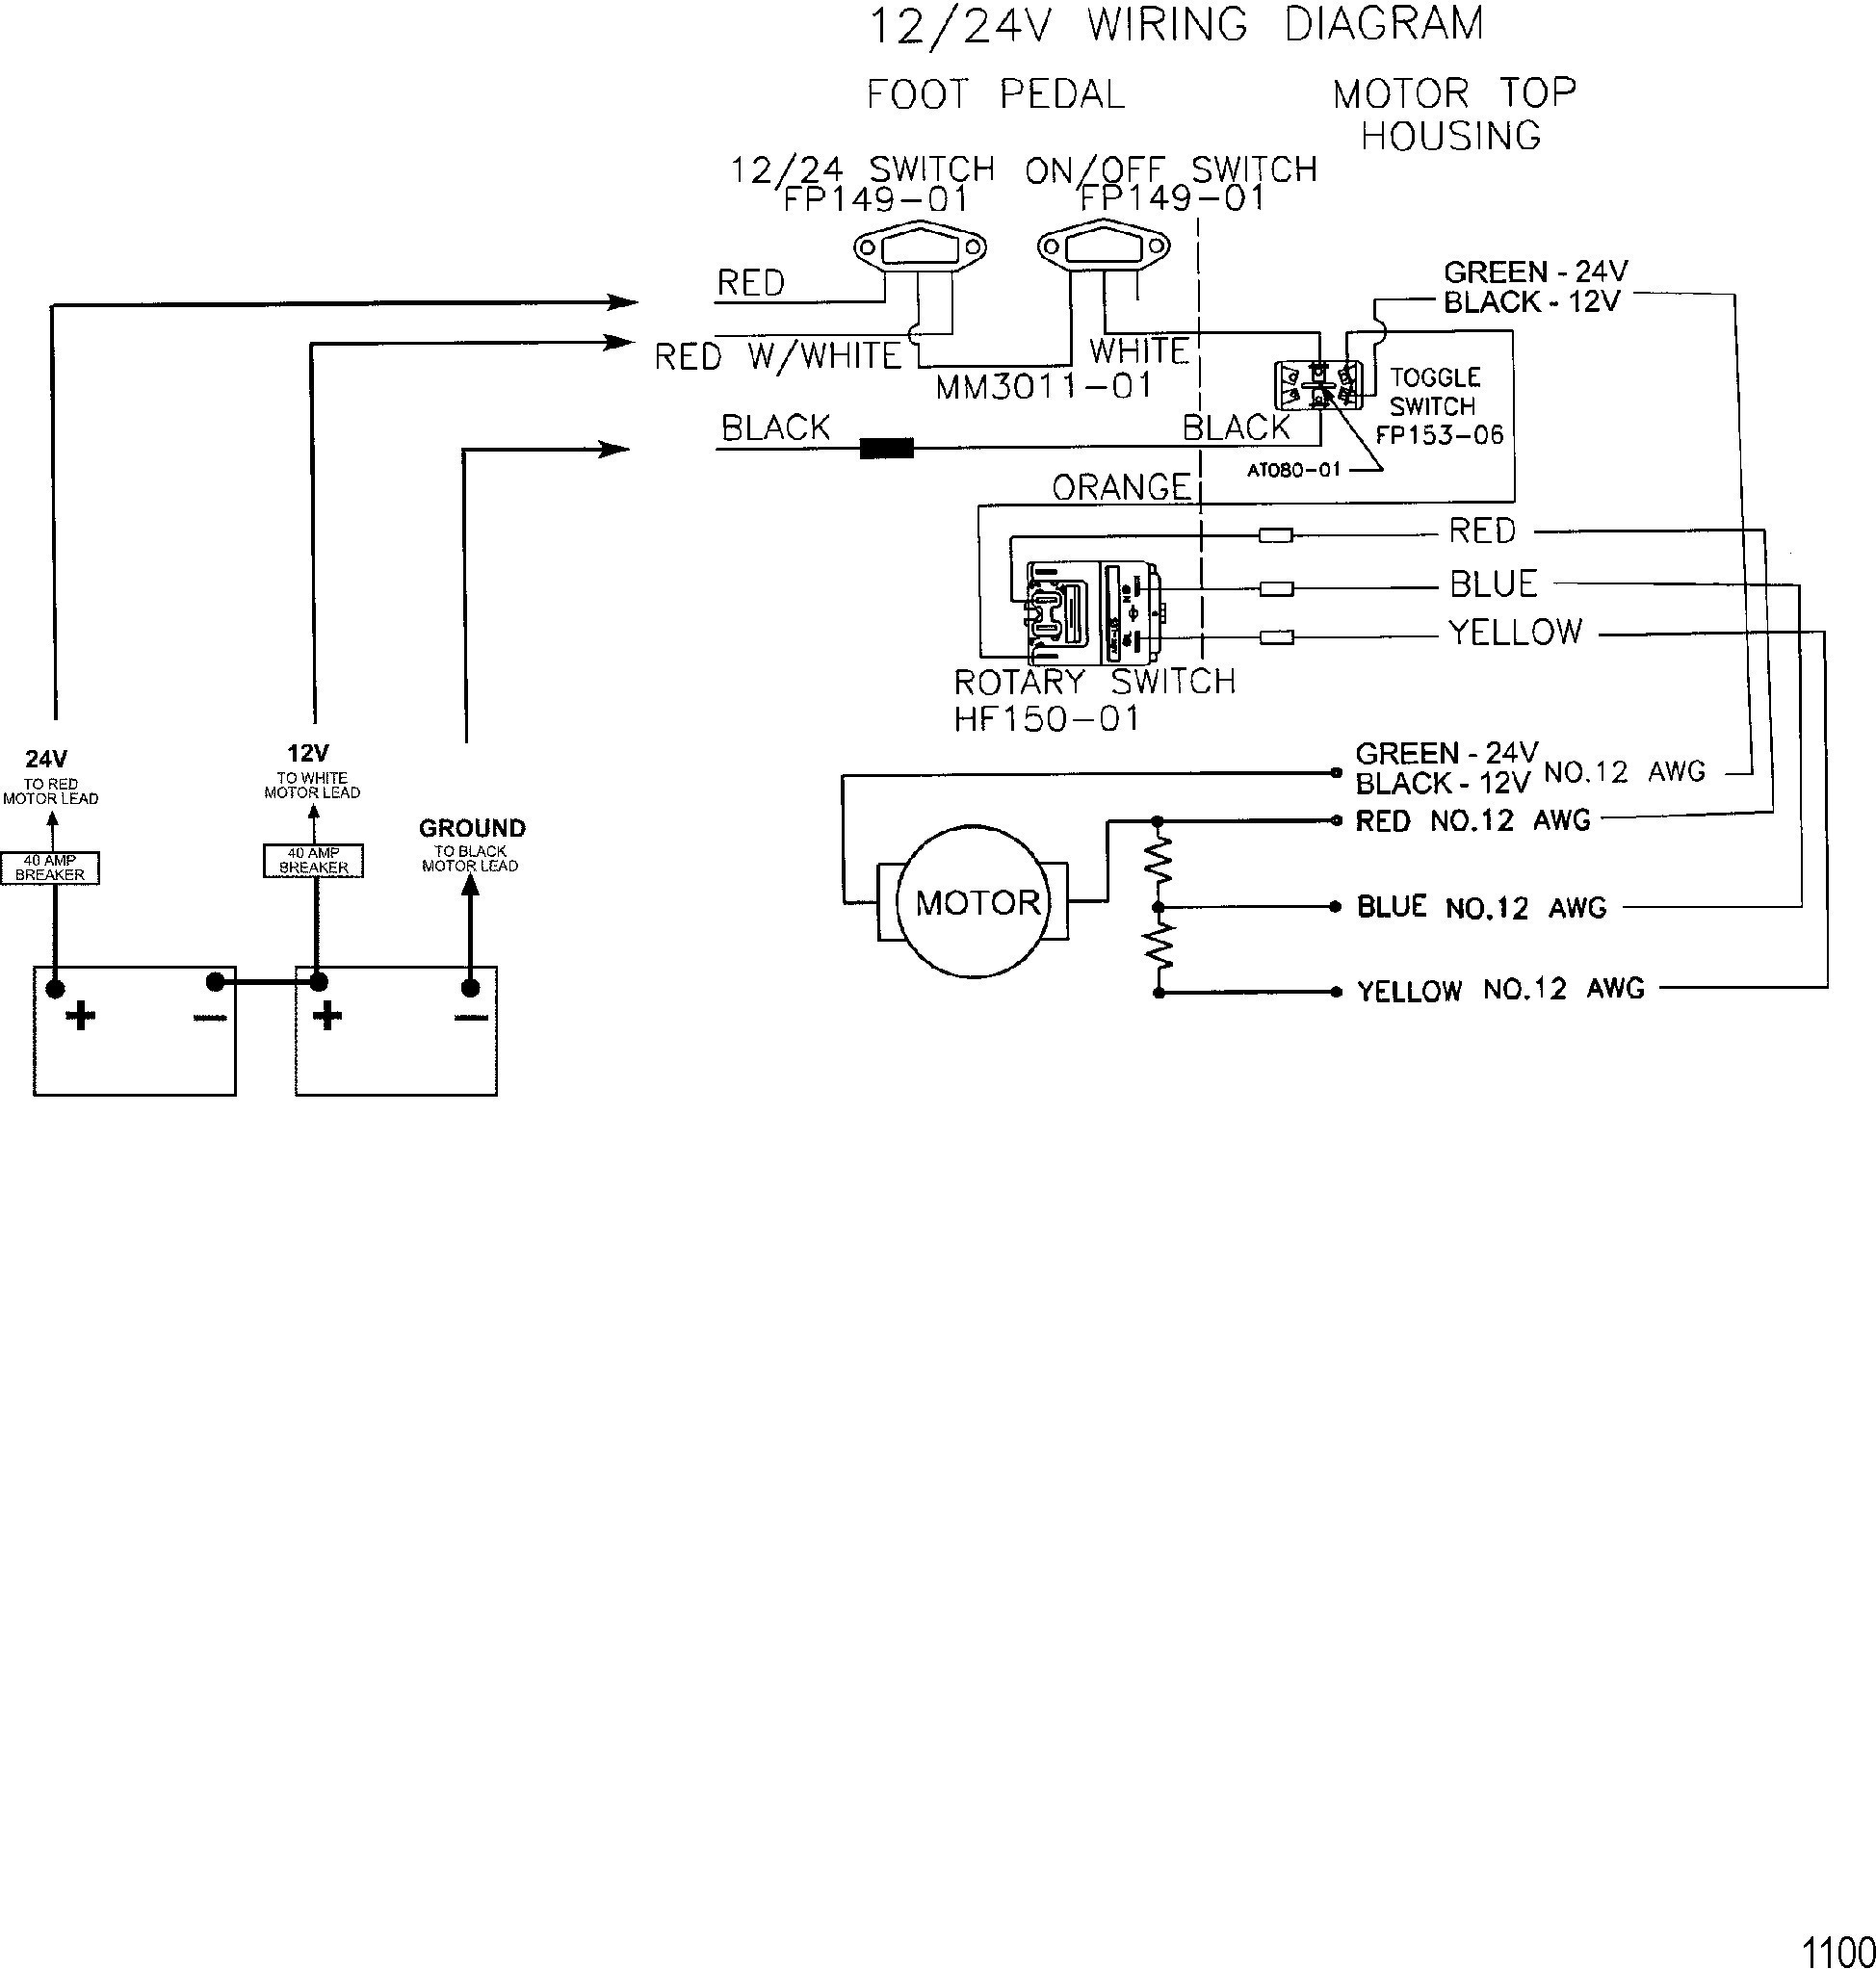 Foot Wire Diagram | Wiring Diagram  Wire Minn Kota Wiring Diagram on